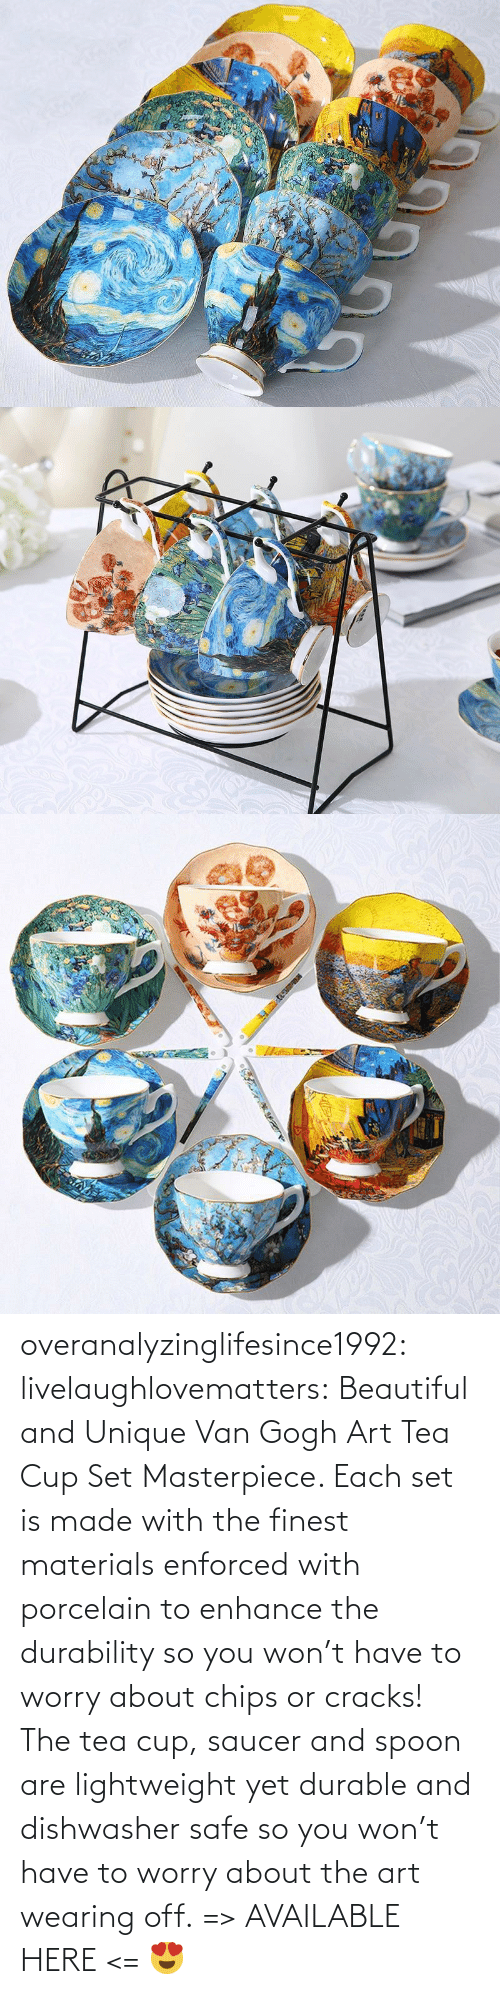 cup: overanalyzinglifesince1992: livelaughlovematters:  Beautiful and Unique Van Gogh Art Tea Cup Set Masterpiece. Each set is made with the finest materials enforced with porcelain to enhance the durability so you won't have to worry about chips or cracks! The tea cup, saucer and spoon are lightweight yet durable and dishwasher safe so you won't have to worry about the art wearing off. => AVAILABLE HERE <=    😍